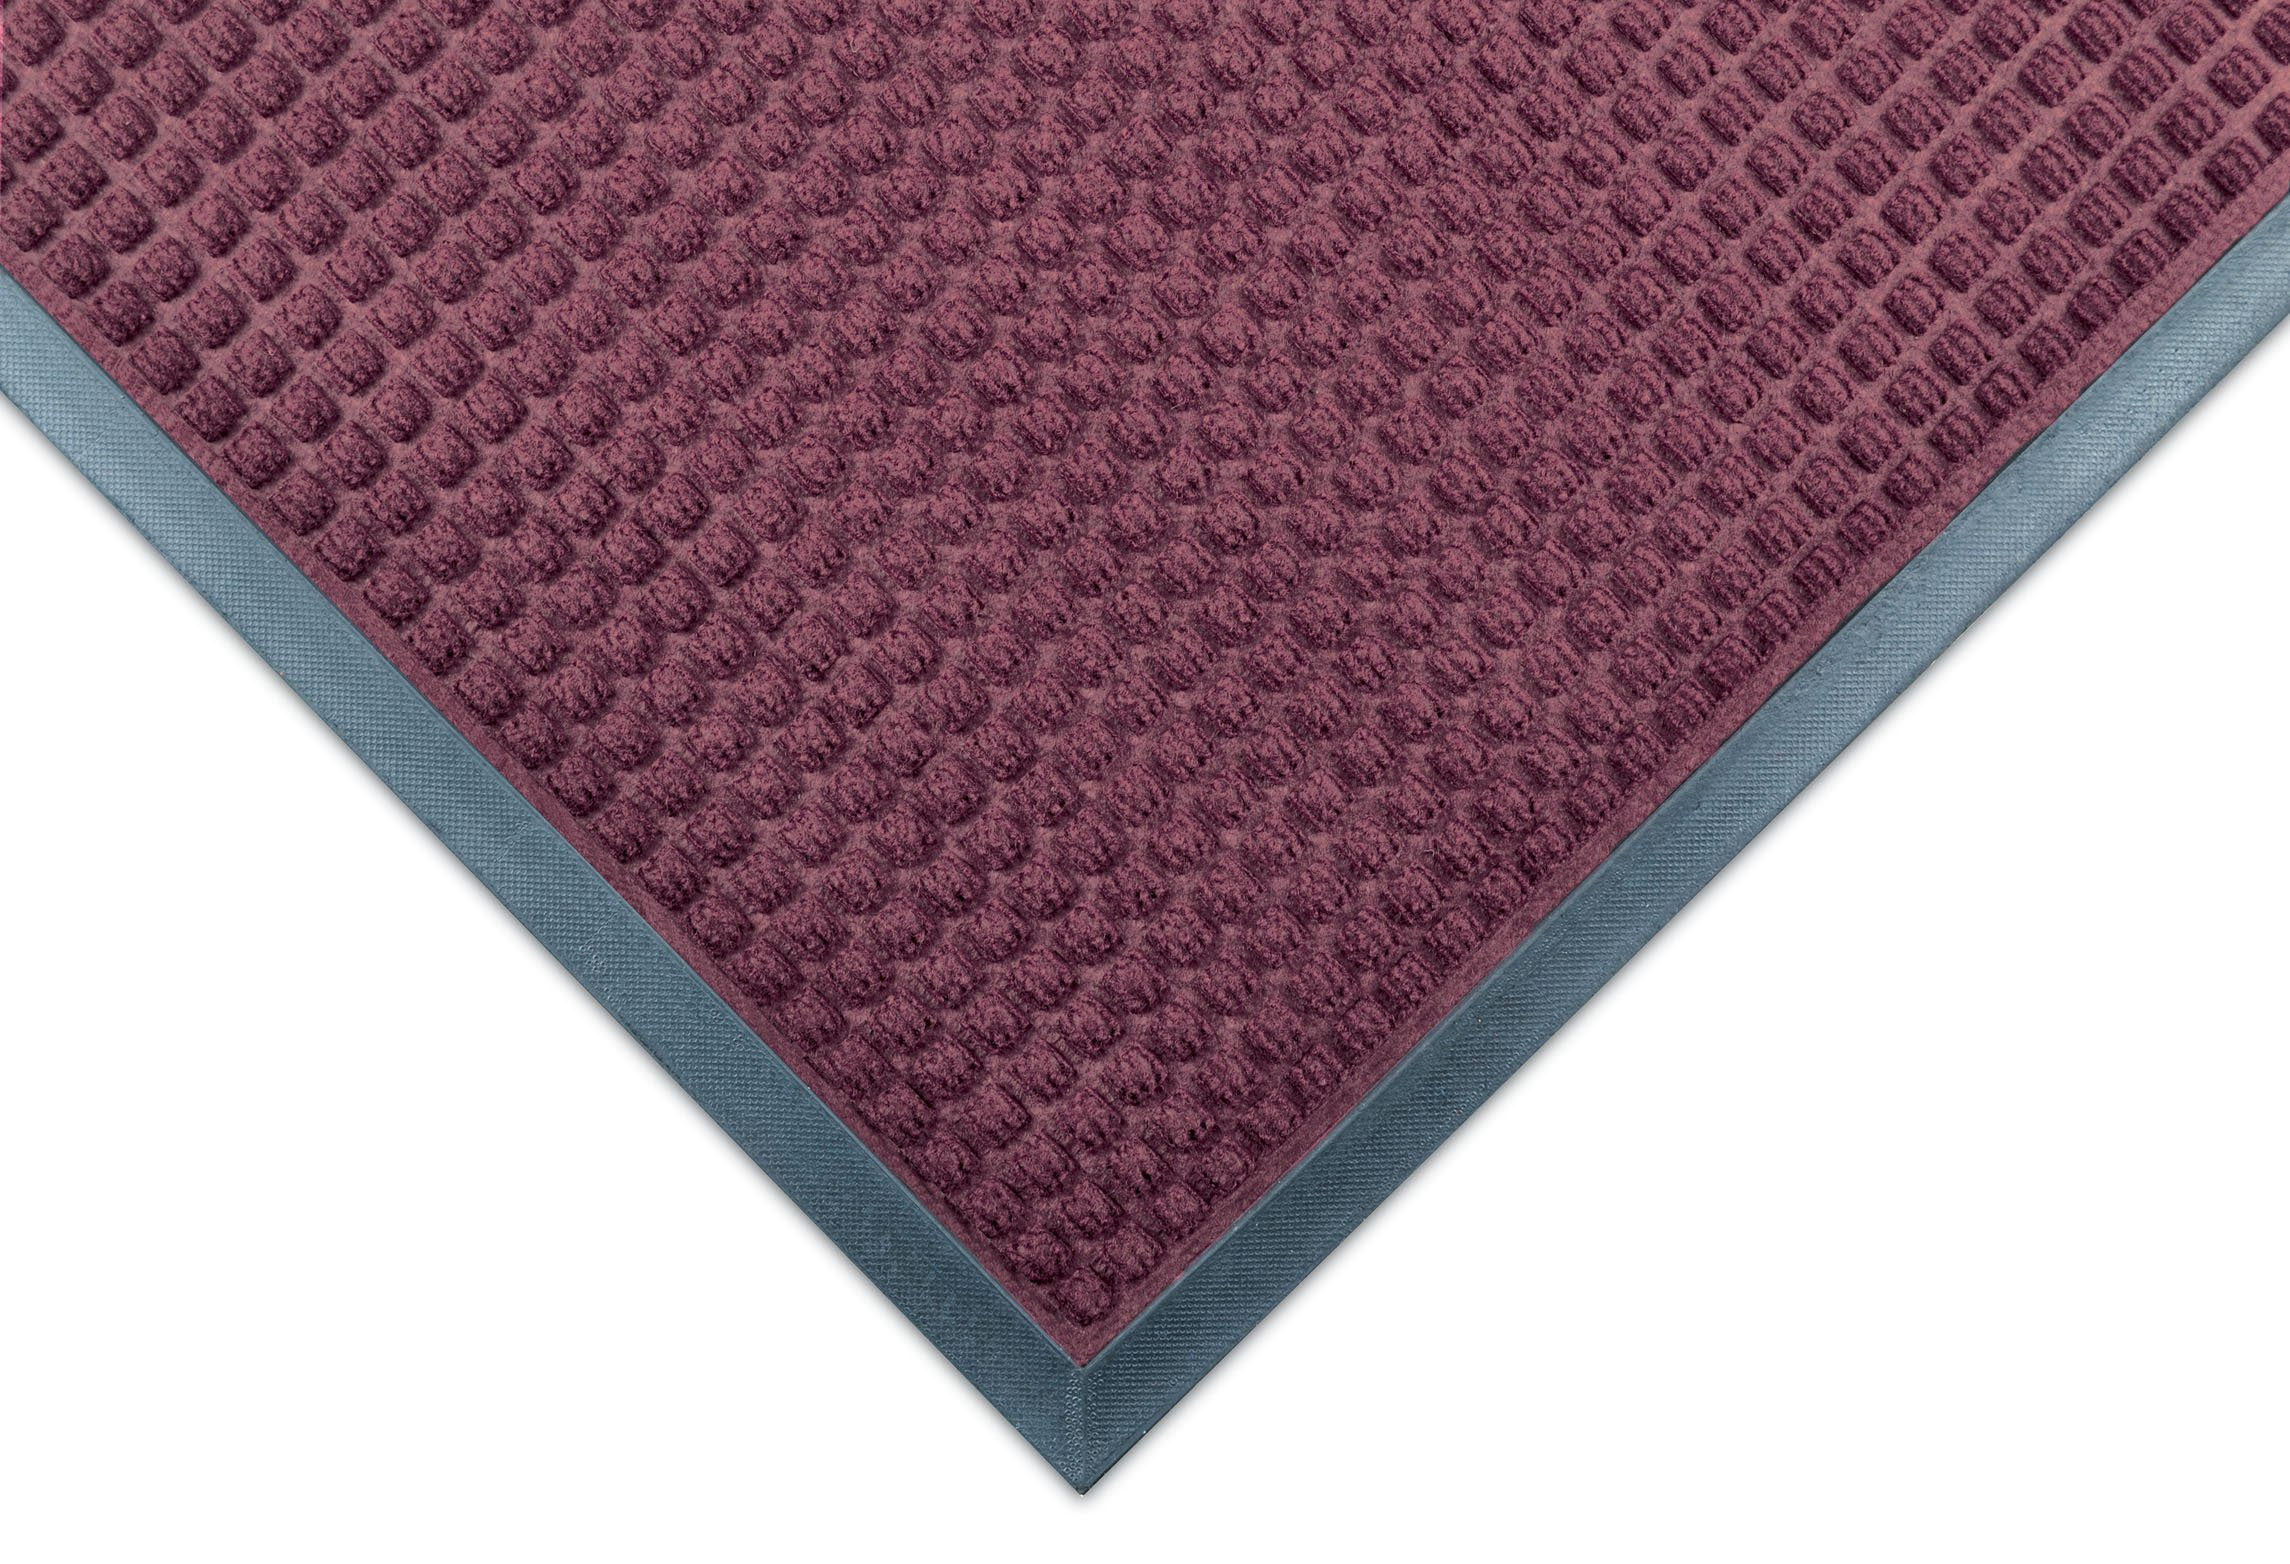 Notrax 166 Guzzler Entrance Mat, for Lobbies and Entranceways, 4' Width x 6' Length x 1/4'' Thickness, Burgundy